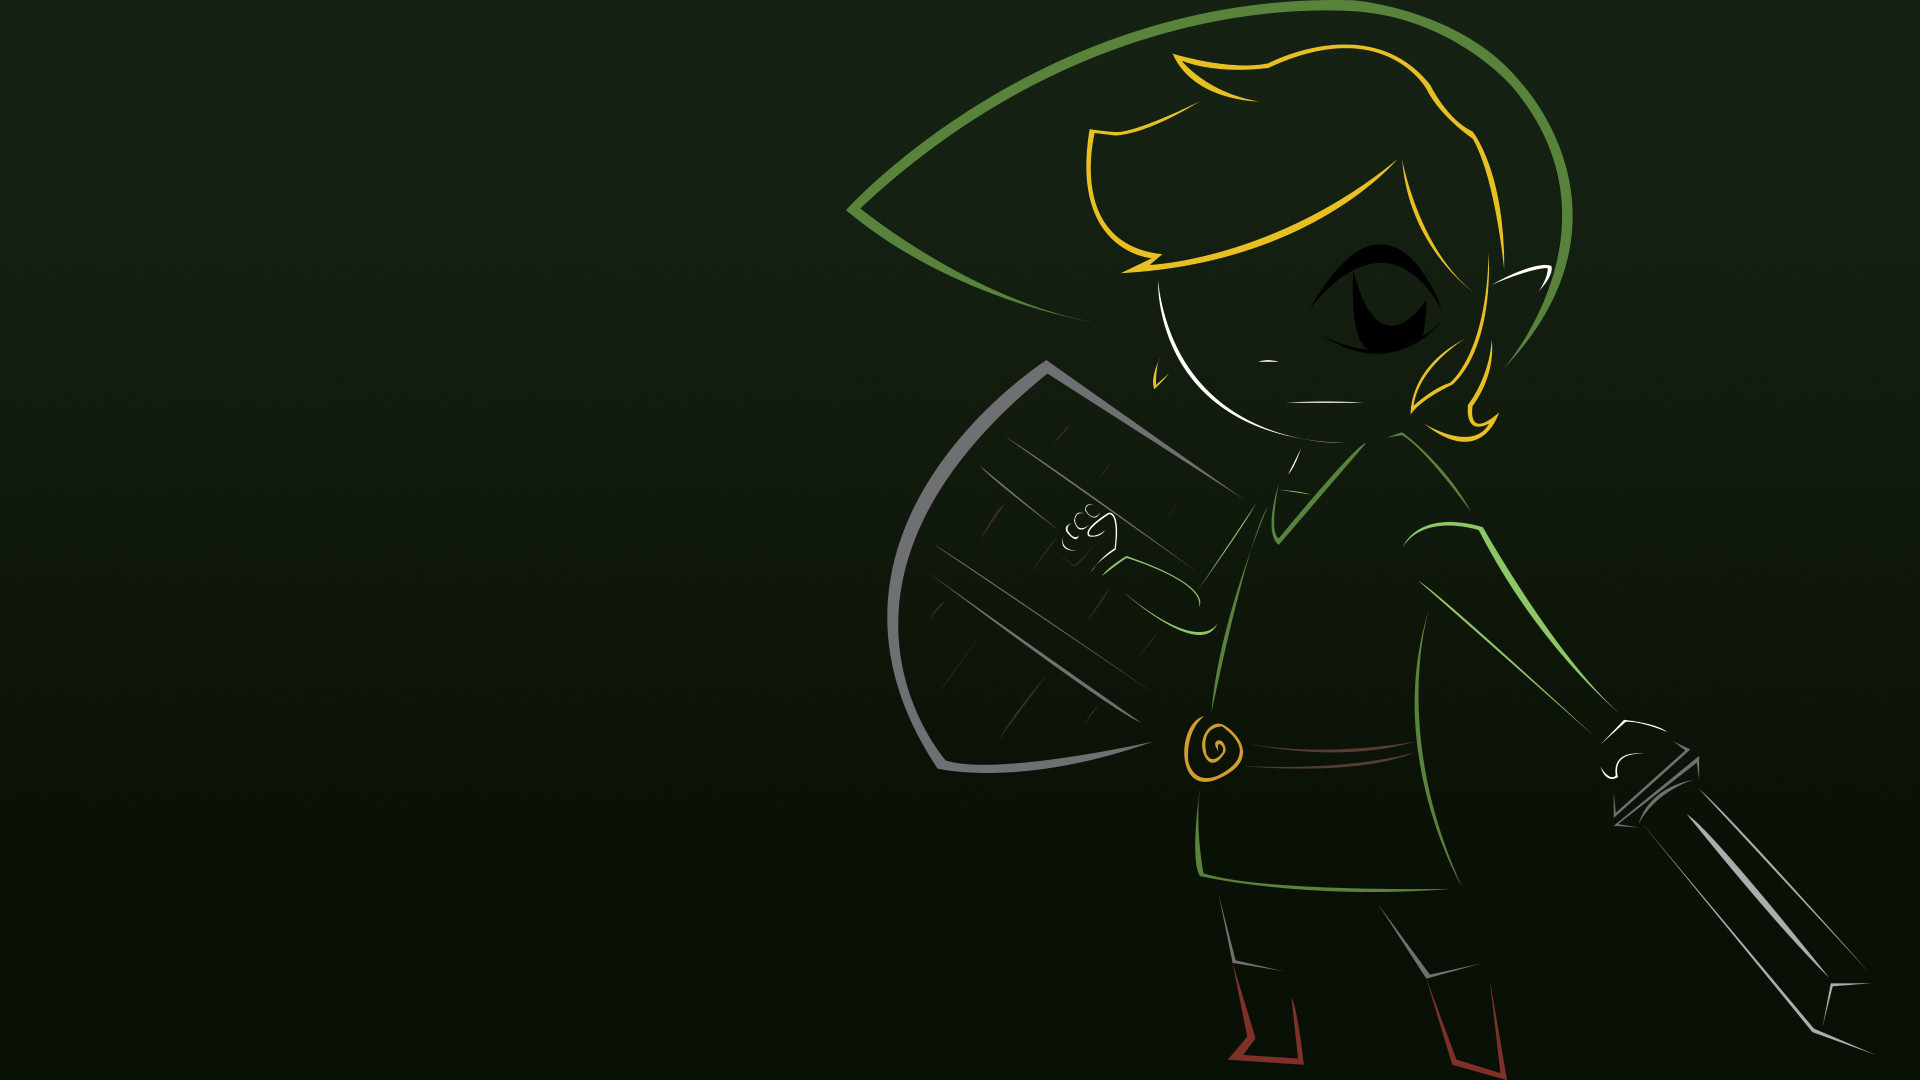 1920x1080 Video Game - The Legend of Zelda: Phantom Hourglass Link Wallpaper